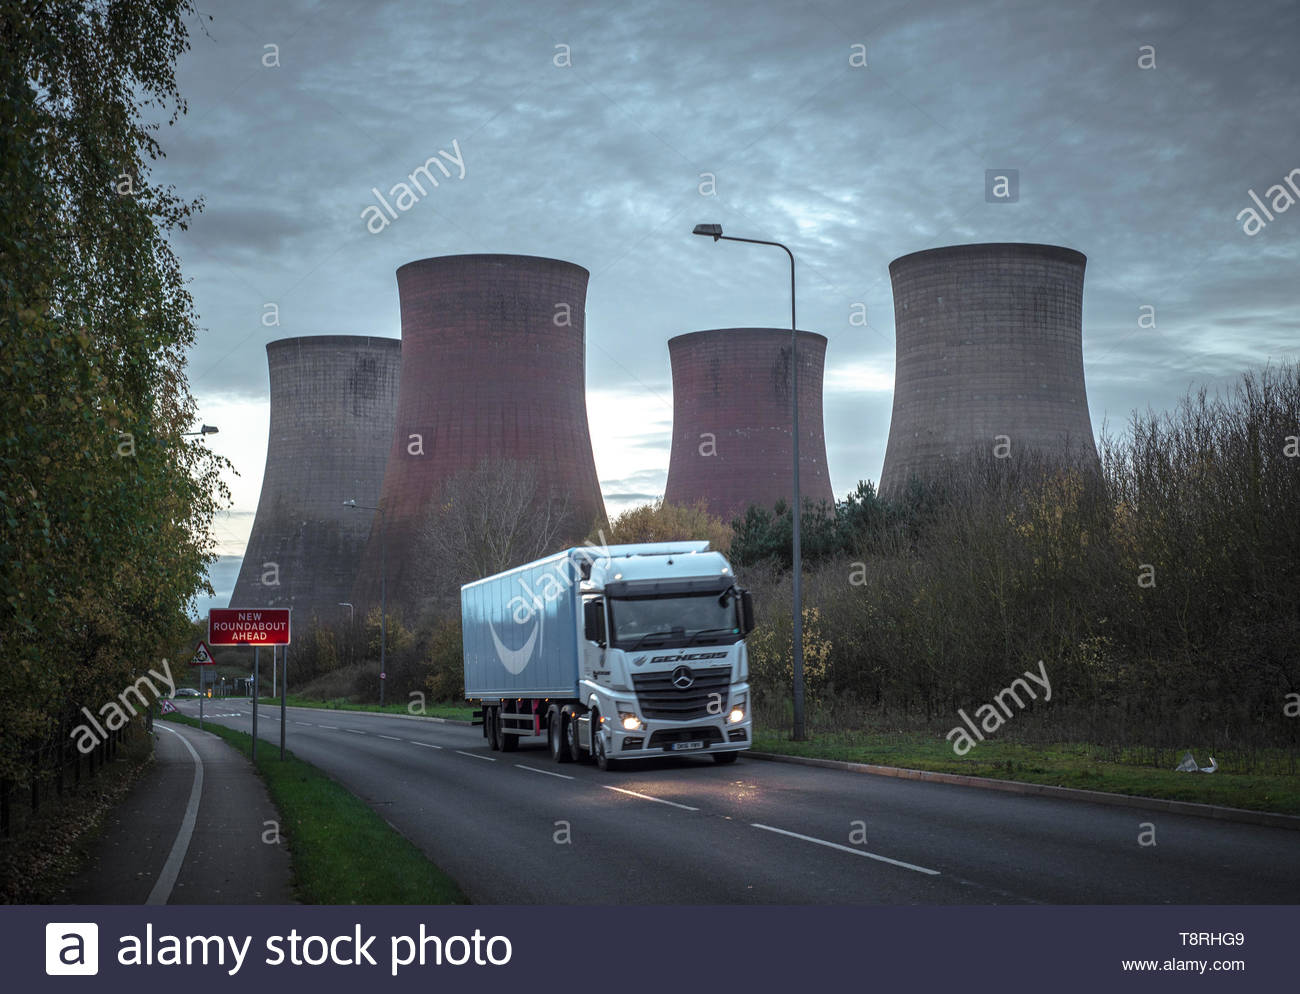 Busy road at dusk with cooling towers of Rugeley power station, recently closed, in the background.  Rugeley, Staffordshire, UK - Stock Image